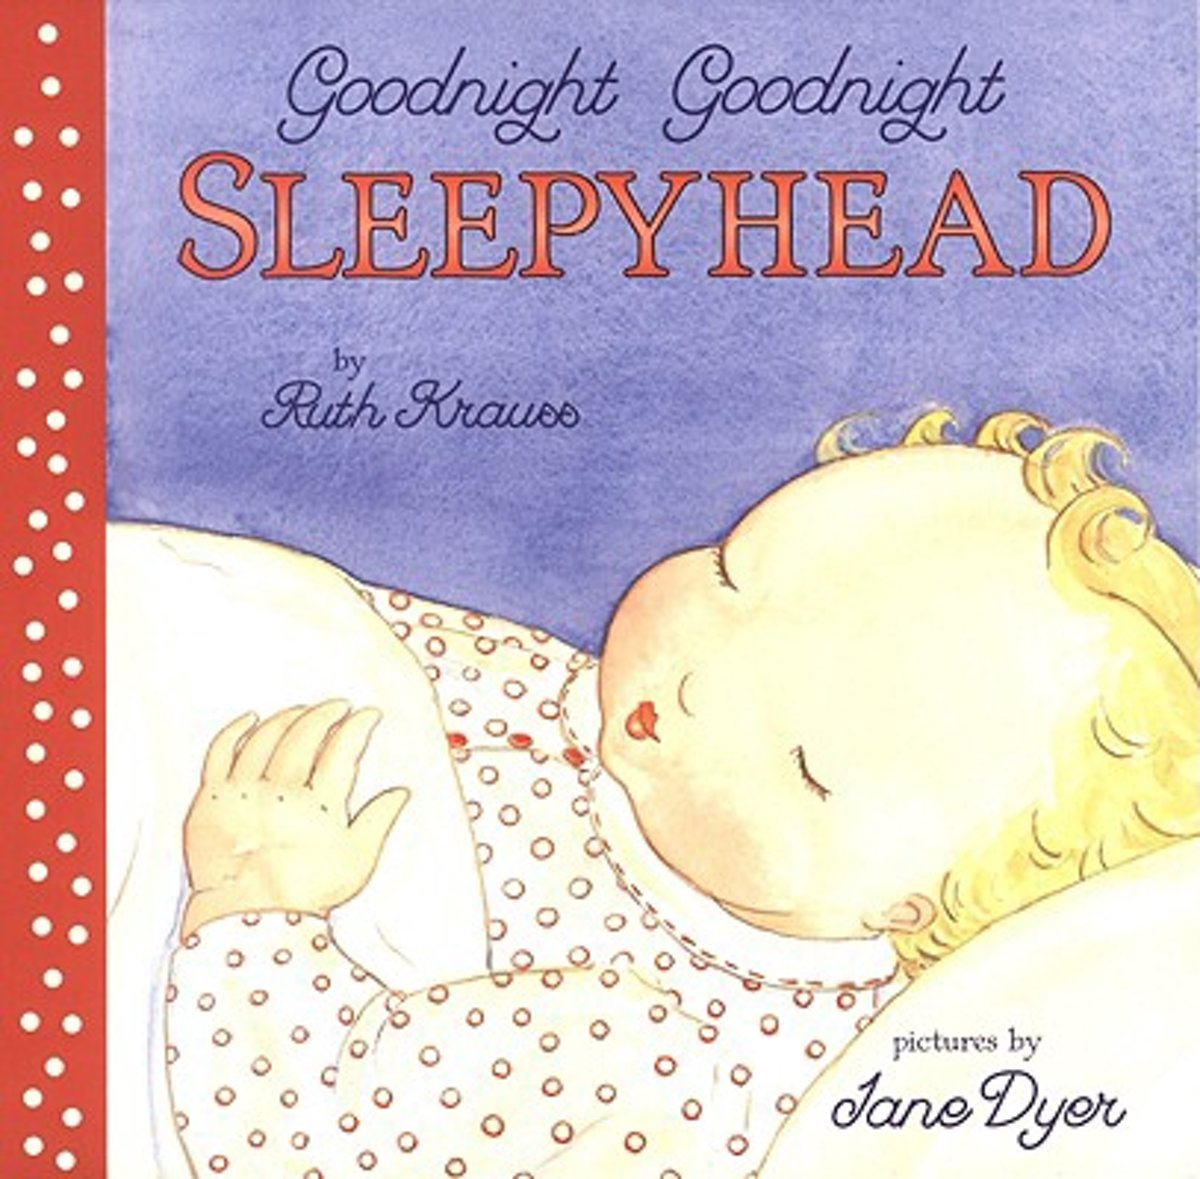 Goodnight Goodnight Sleepyhead Board Book